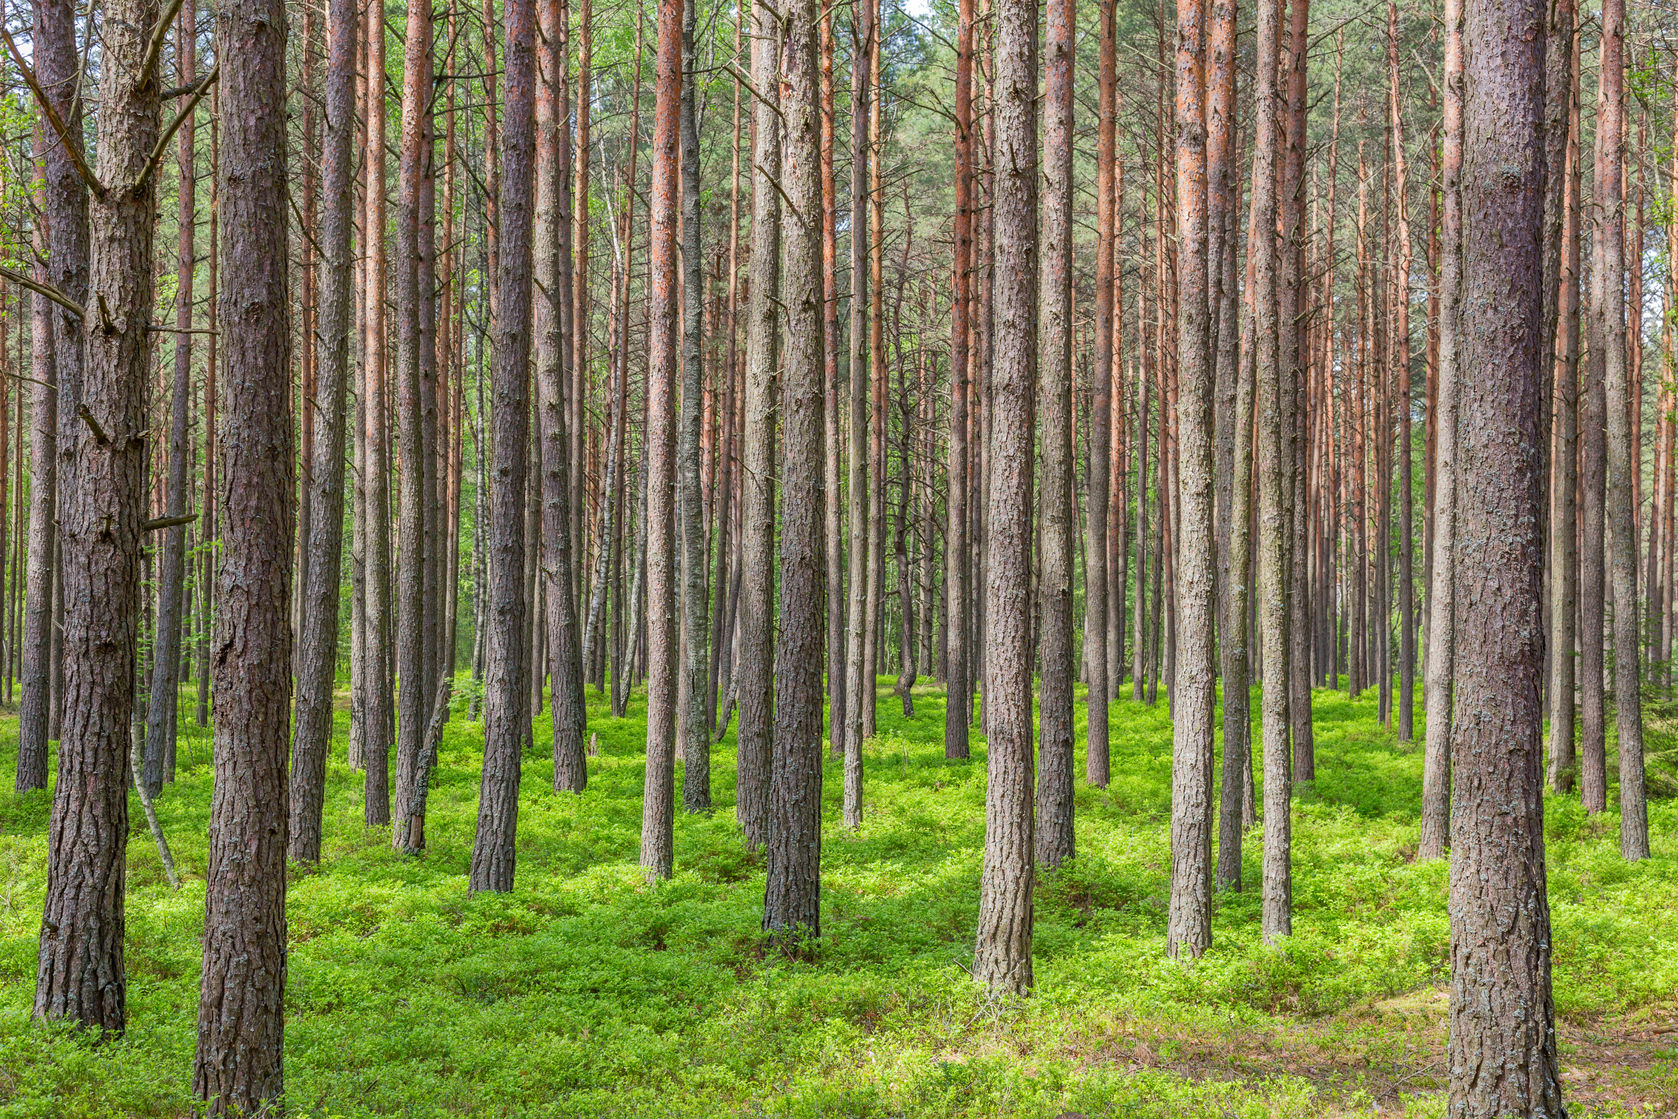 45397567 - pine trees in the forest green trees summer